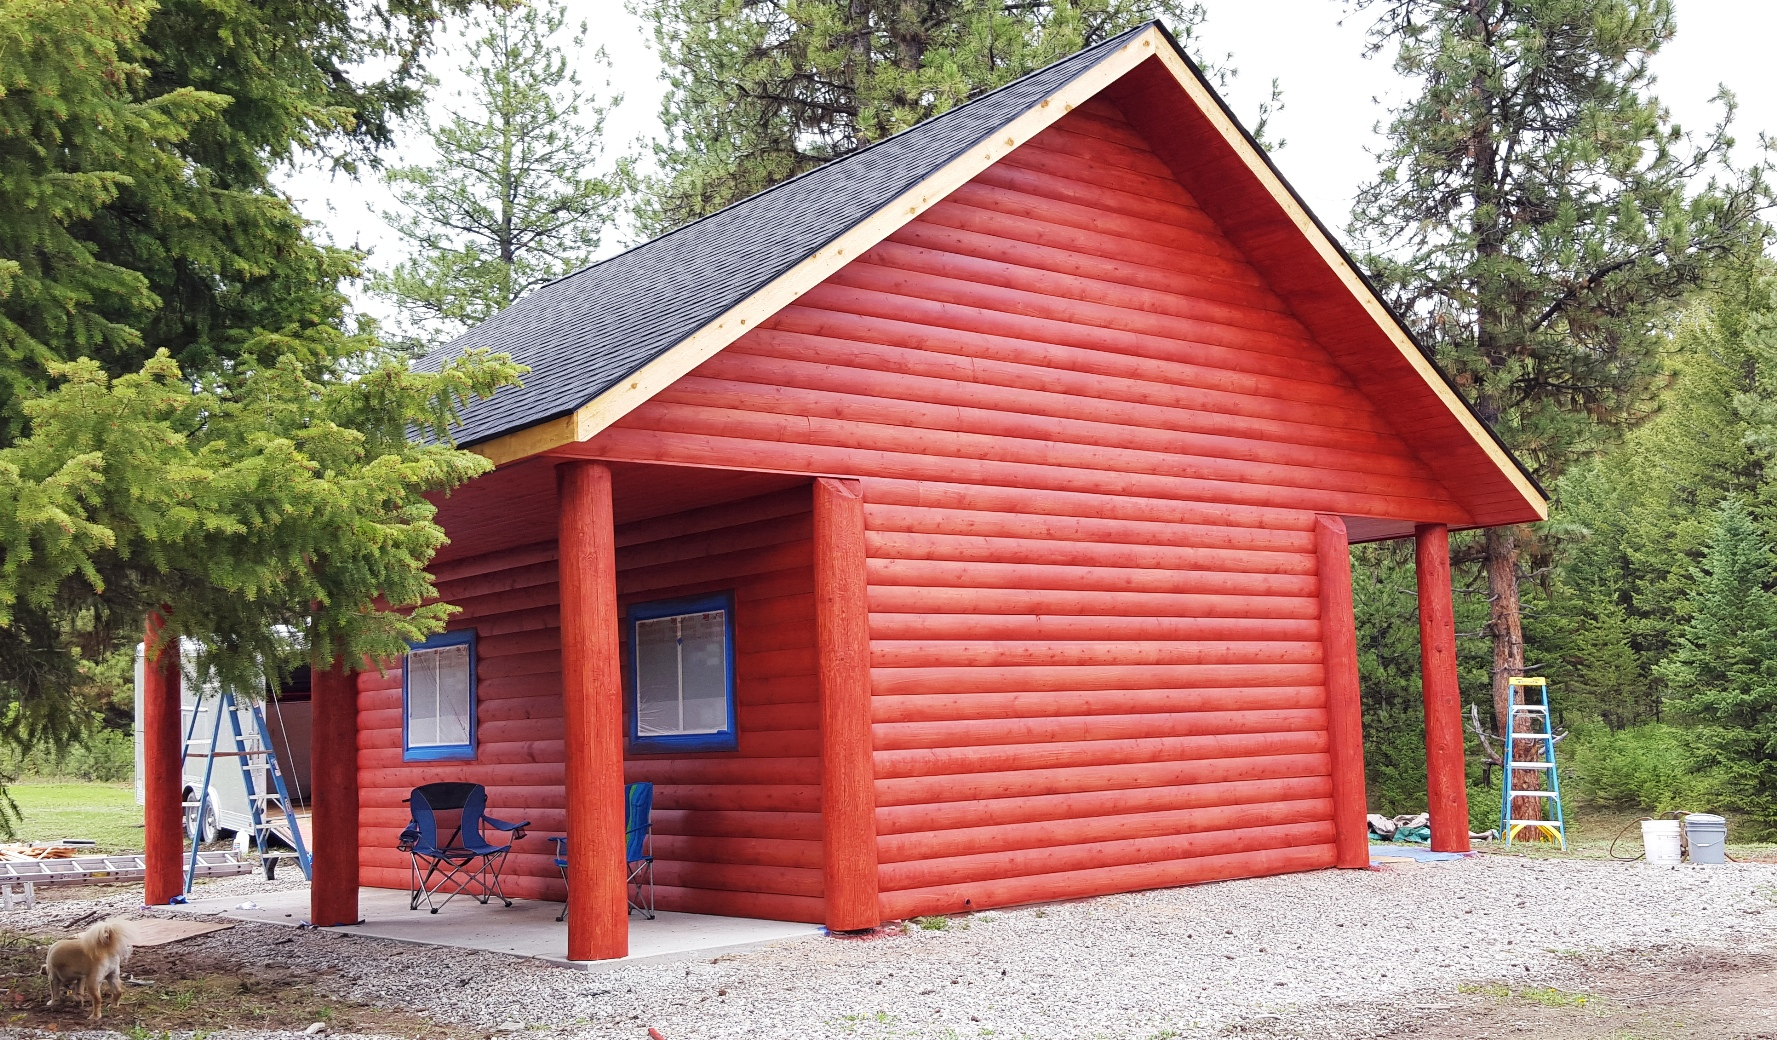 2016-04-25 - Newly Stained Garden Shed at SR2 and Puppy Montana